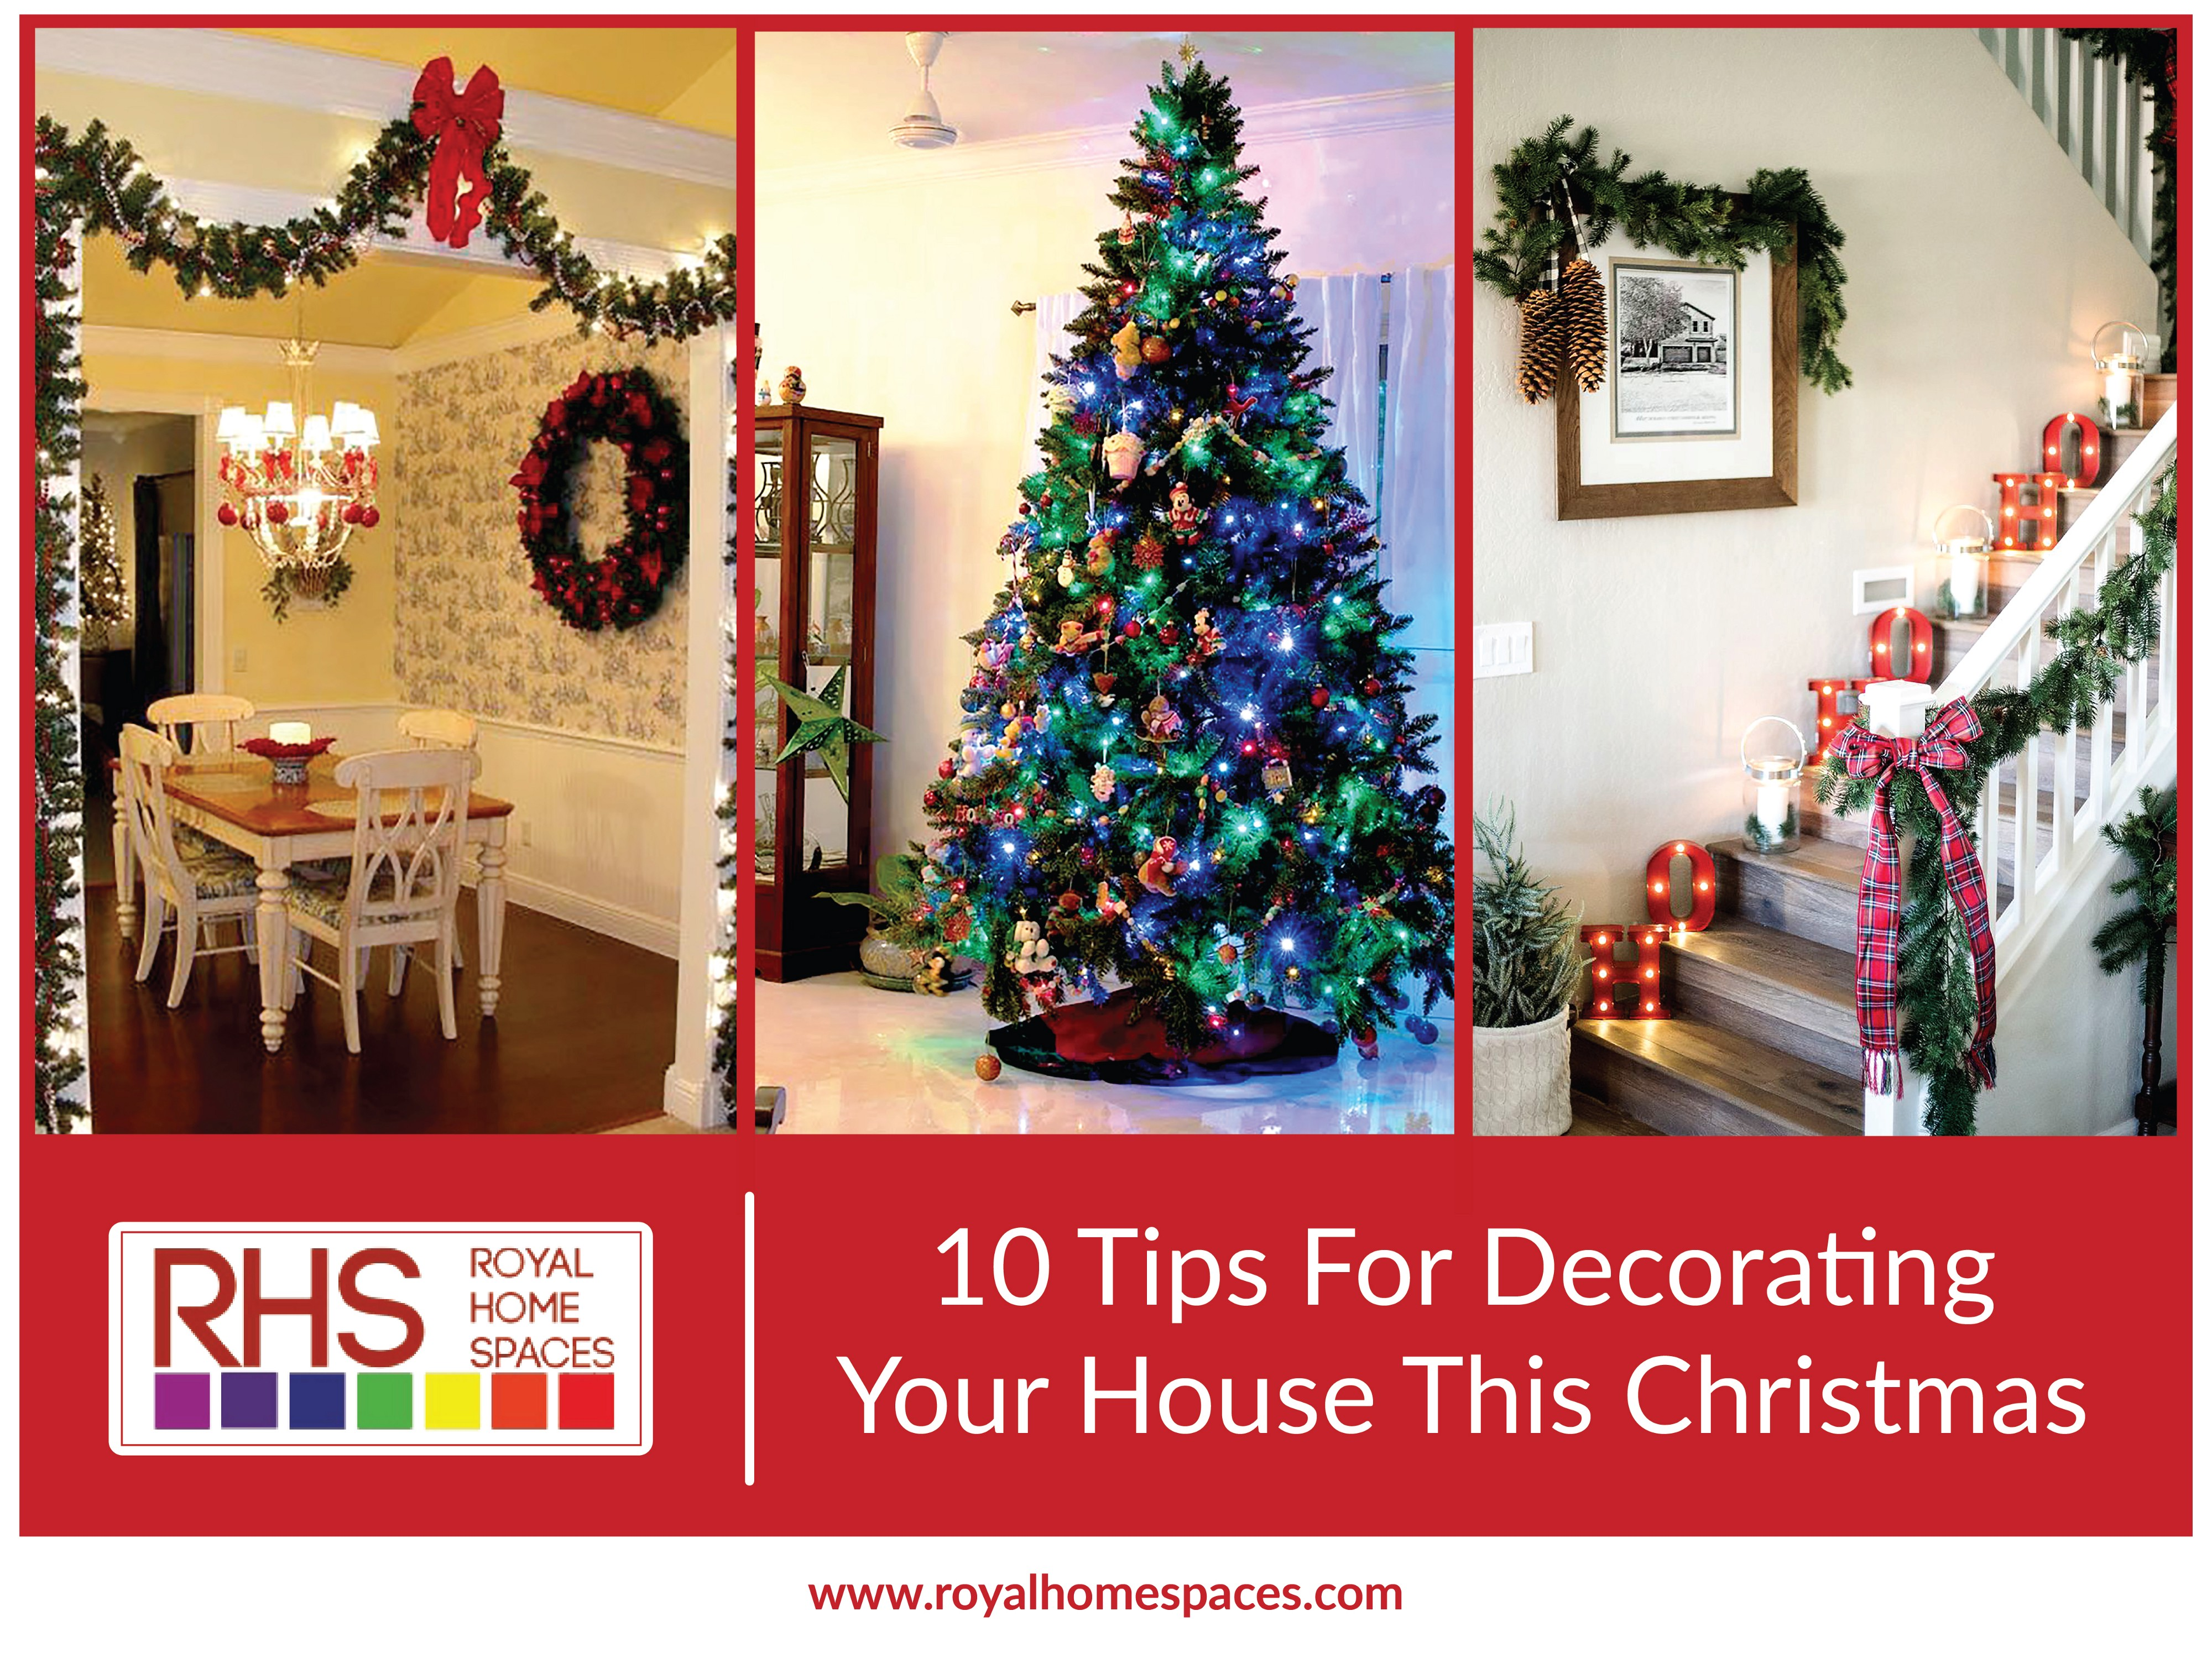 10 Tips For Decorating Your House This Christmas Royal Home